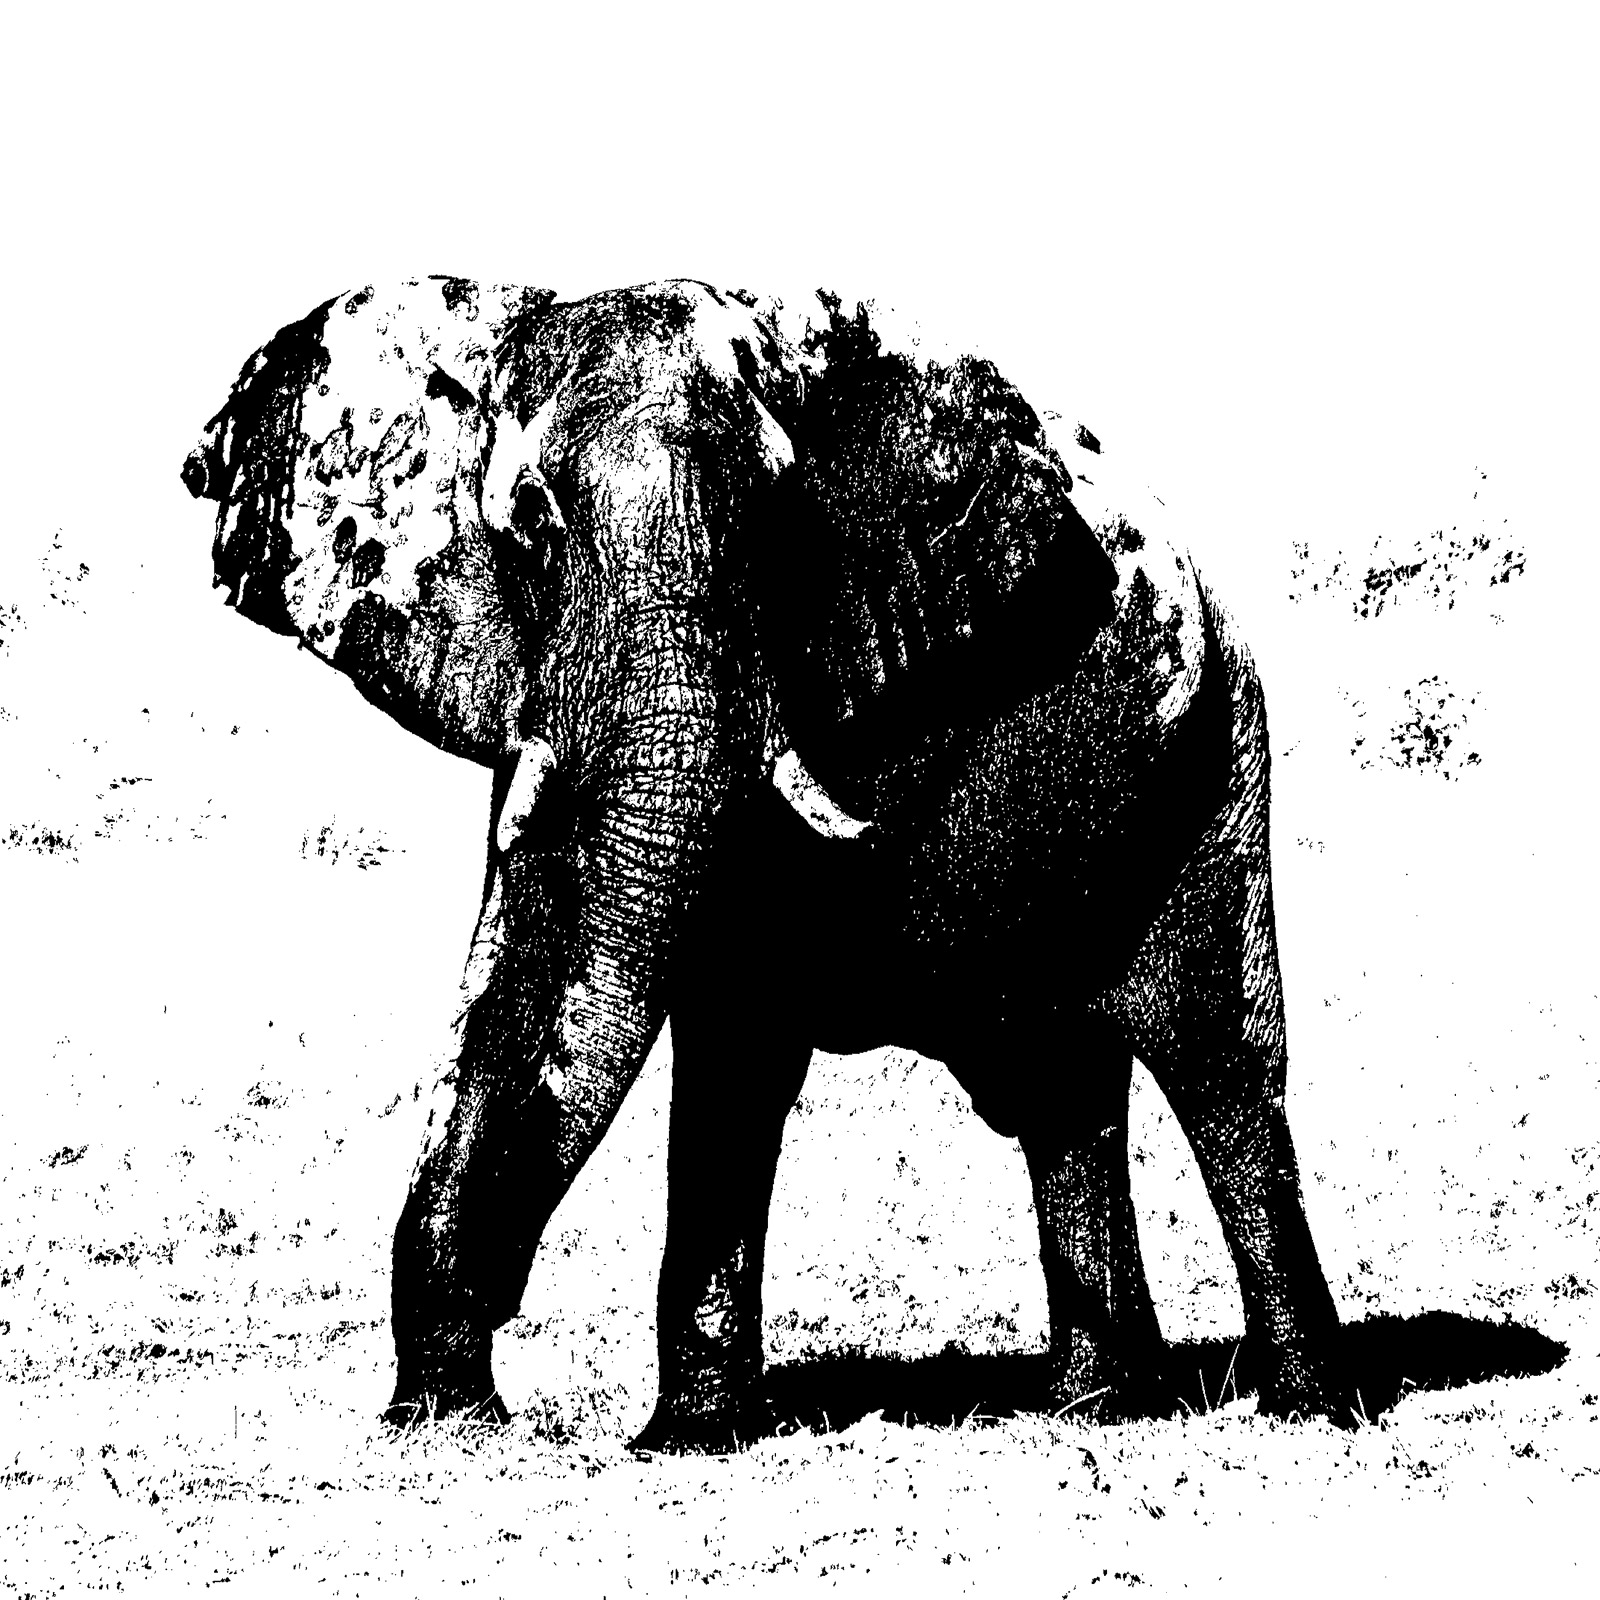 This huge bull elephant took great exception to the presence of our vehicle and shook his head violently from side to side trumpeting...